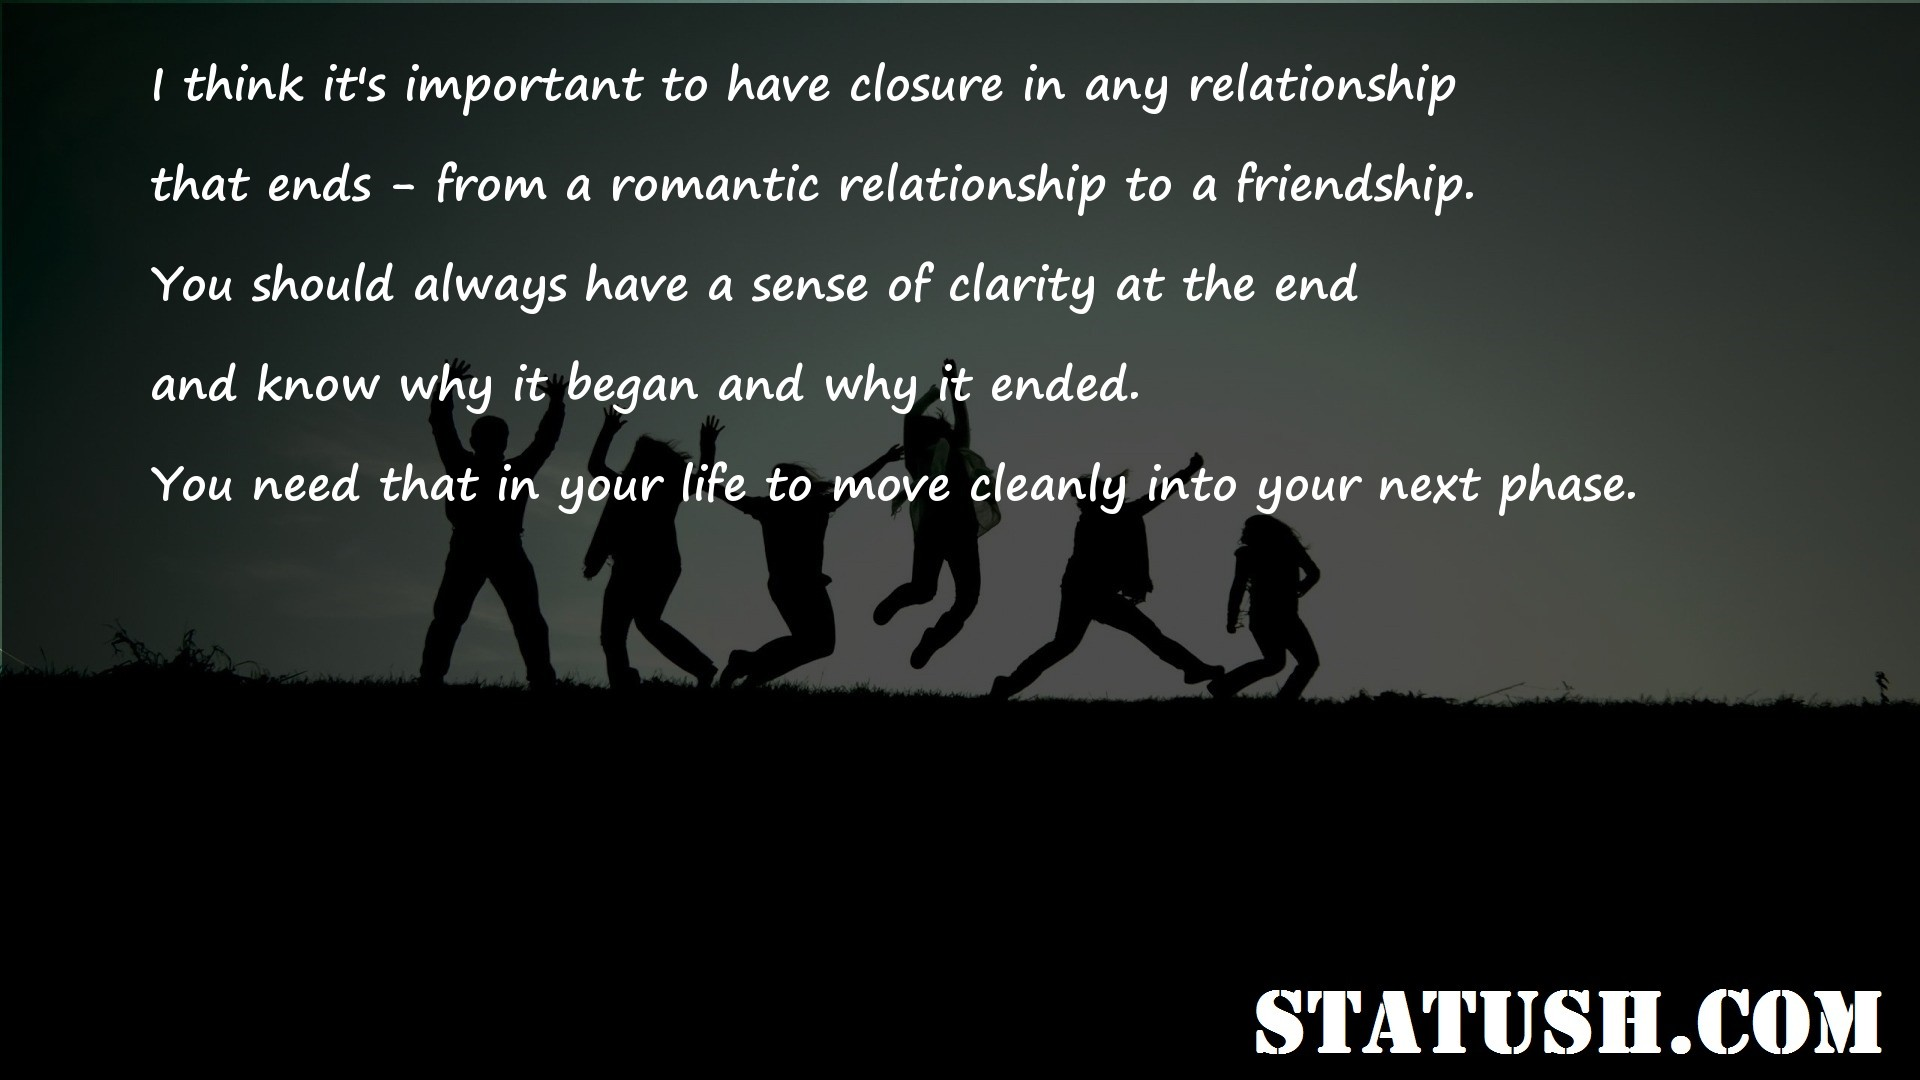 I think its important to have closure in any relationship